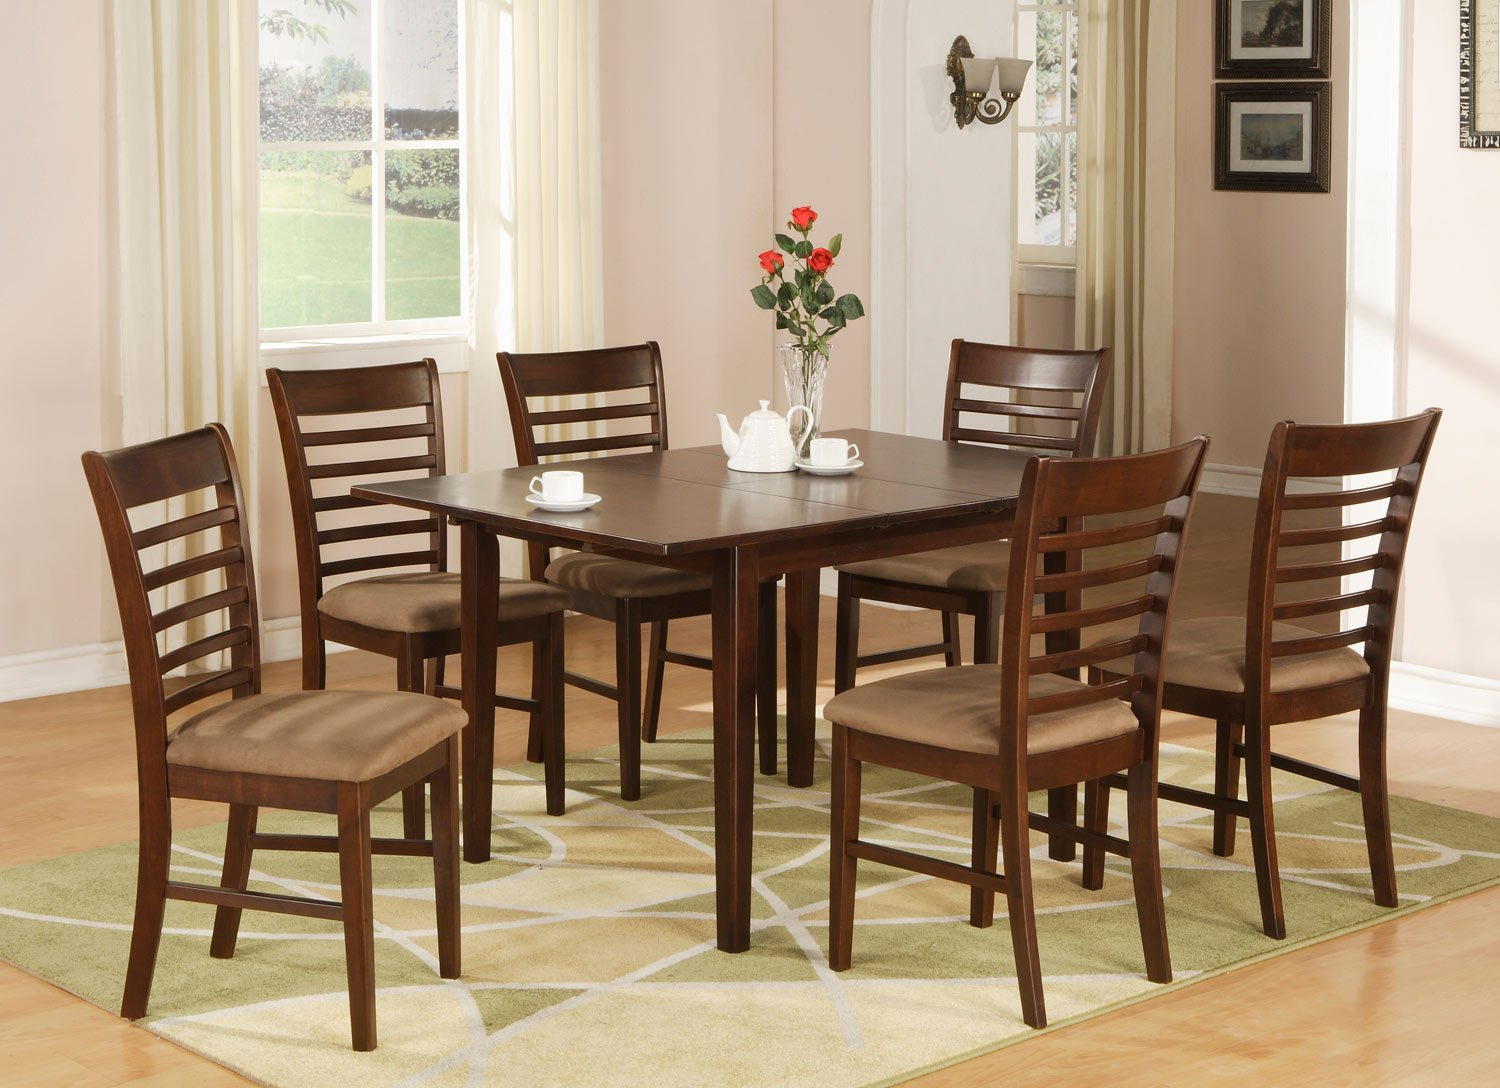 Milan 7 Pc Rectangular Dinette Dining Table Set 36 Quot X 54